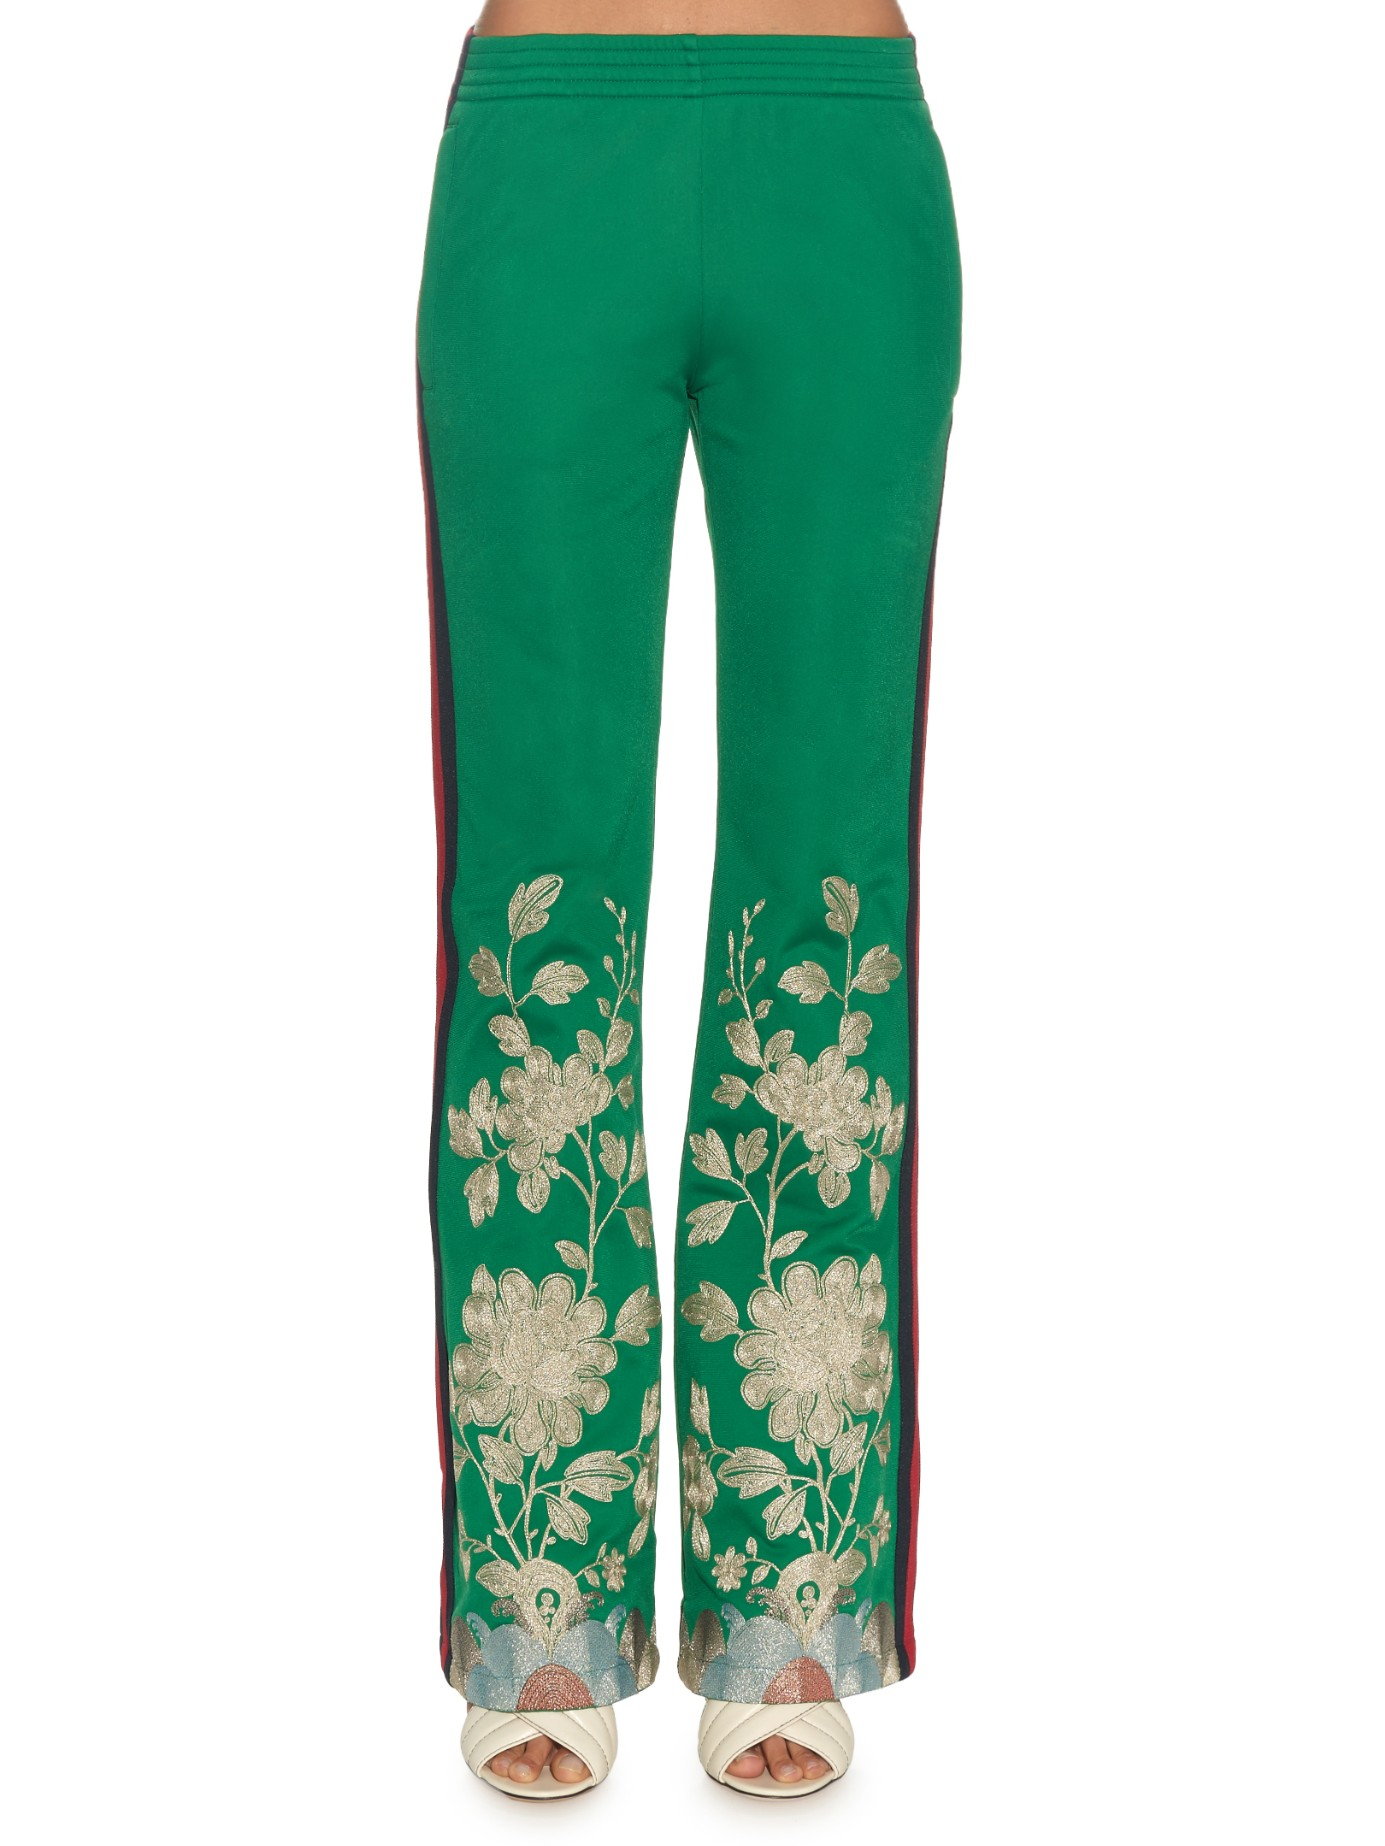 63d6d2d3cb22 Lyst - Gucci Embroidered Slim-Fit Track Pants in Green